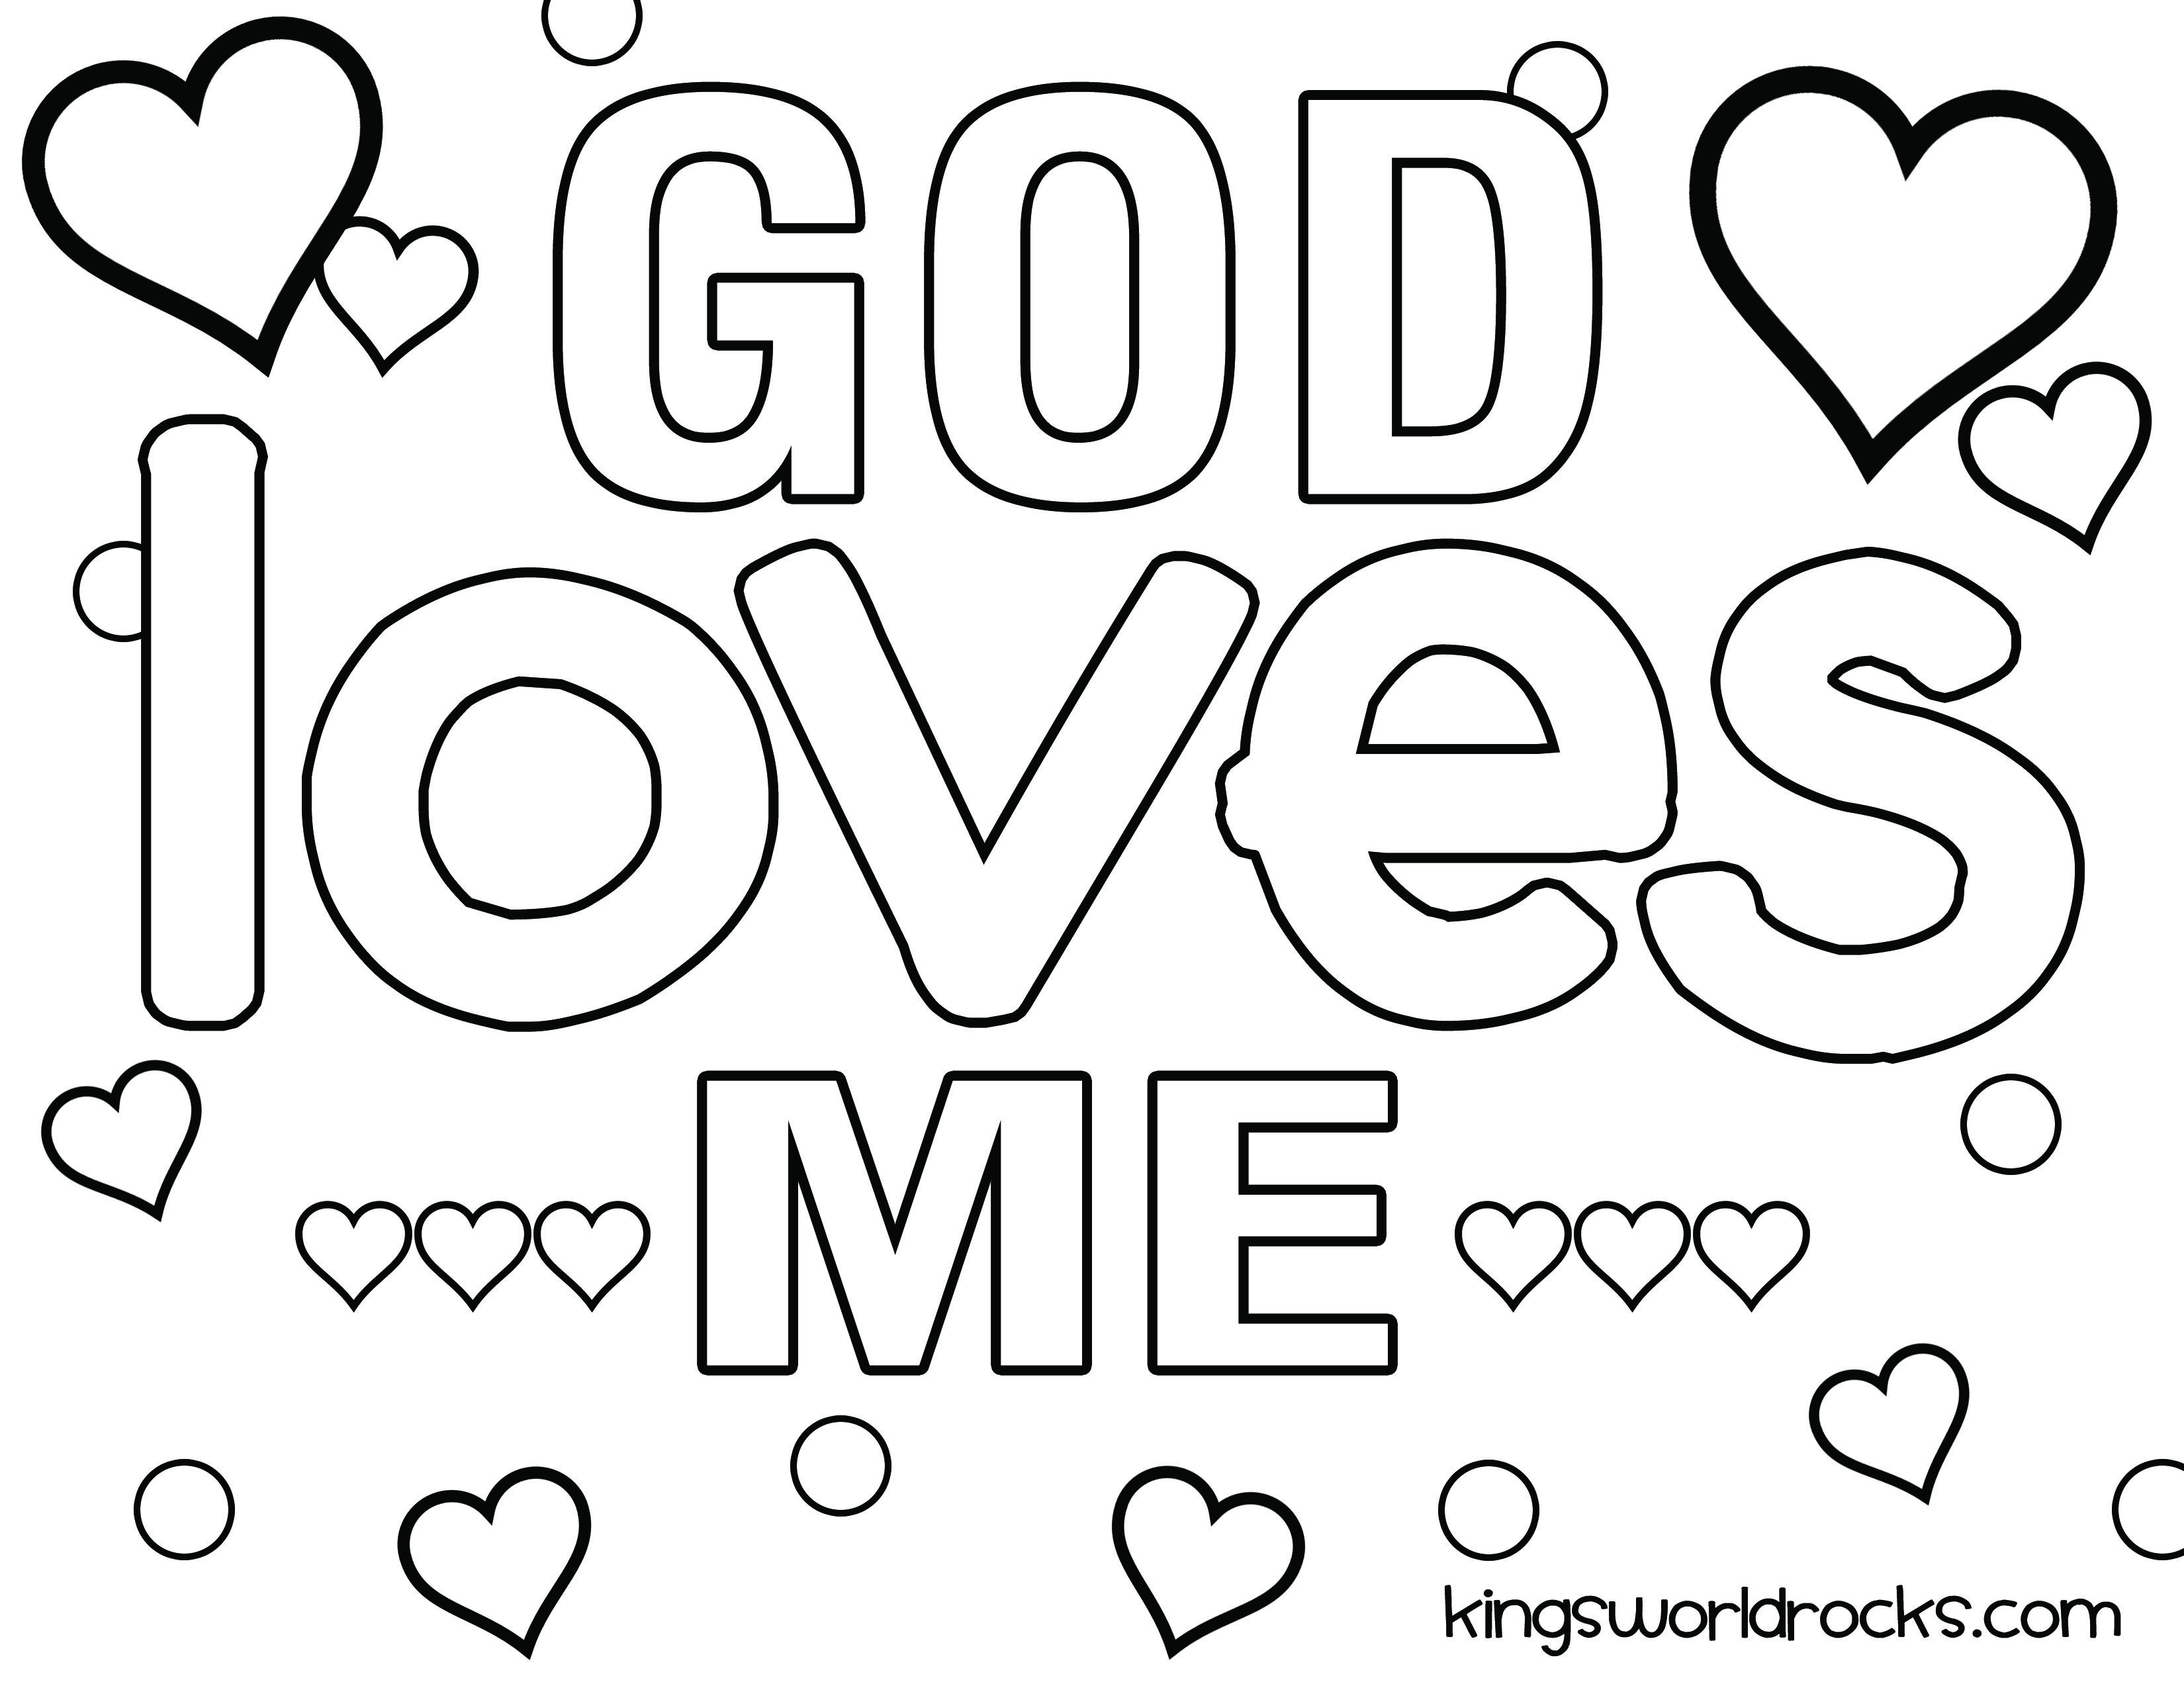 God Loves Me Coloring Page | KW Curriculum Ideas | Pinterest ...